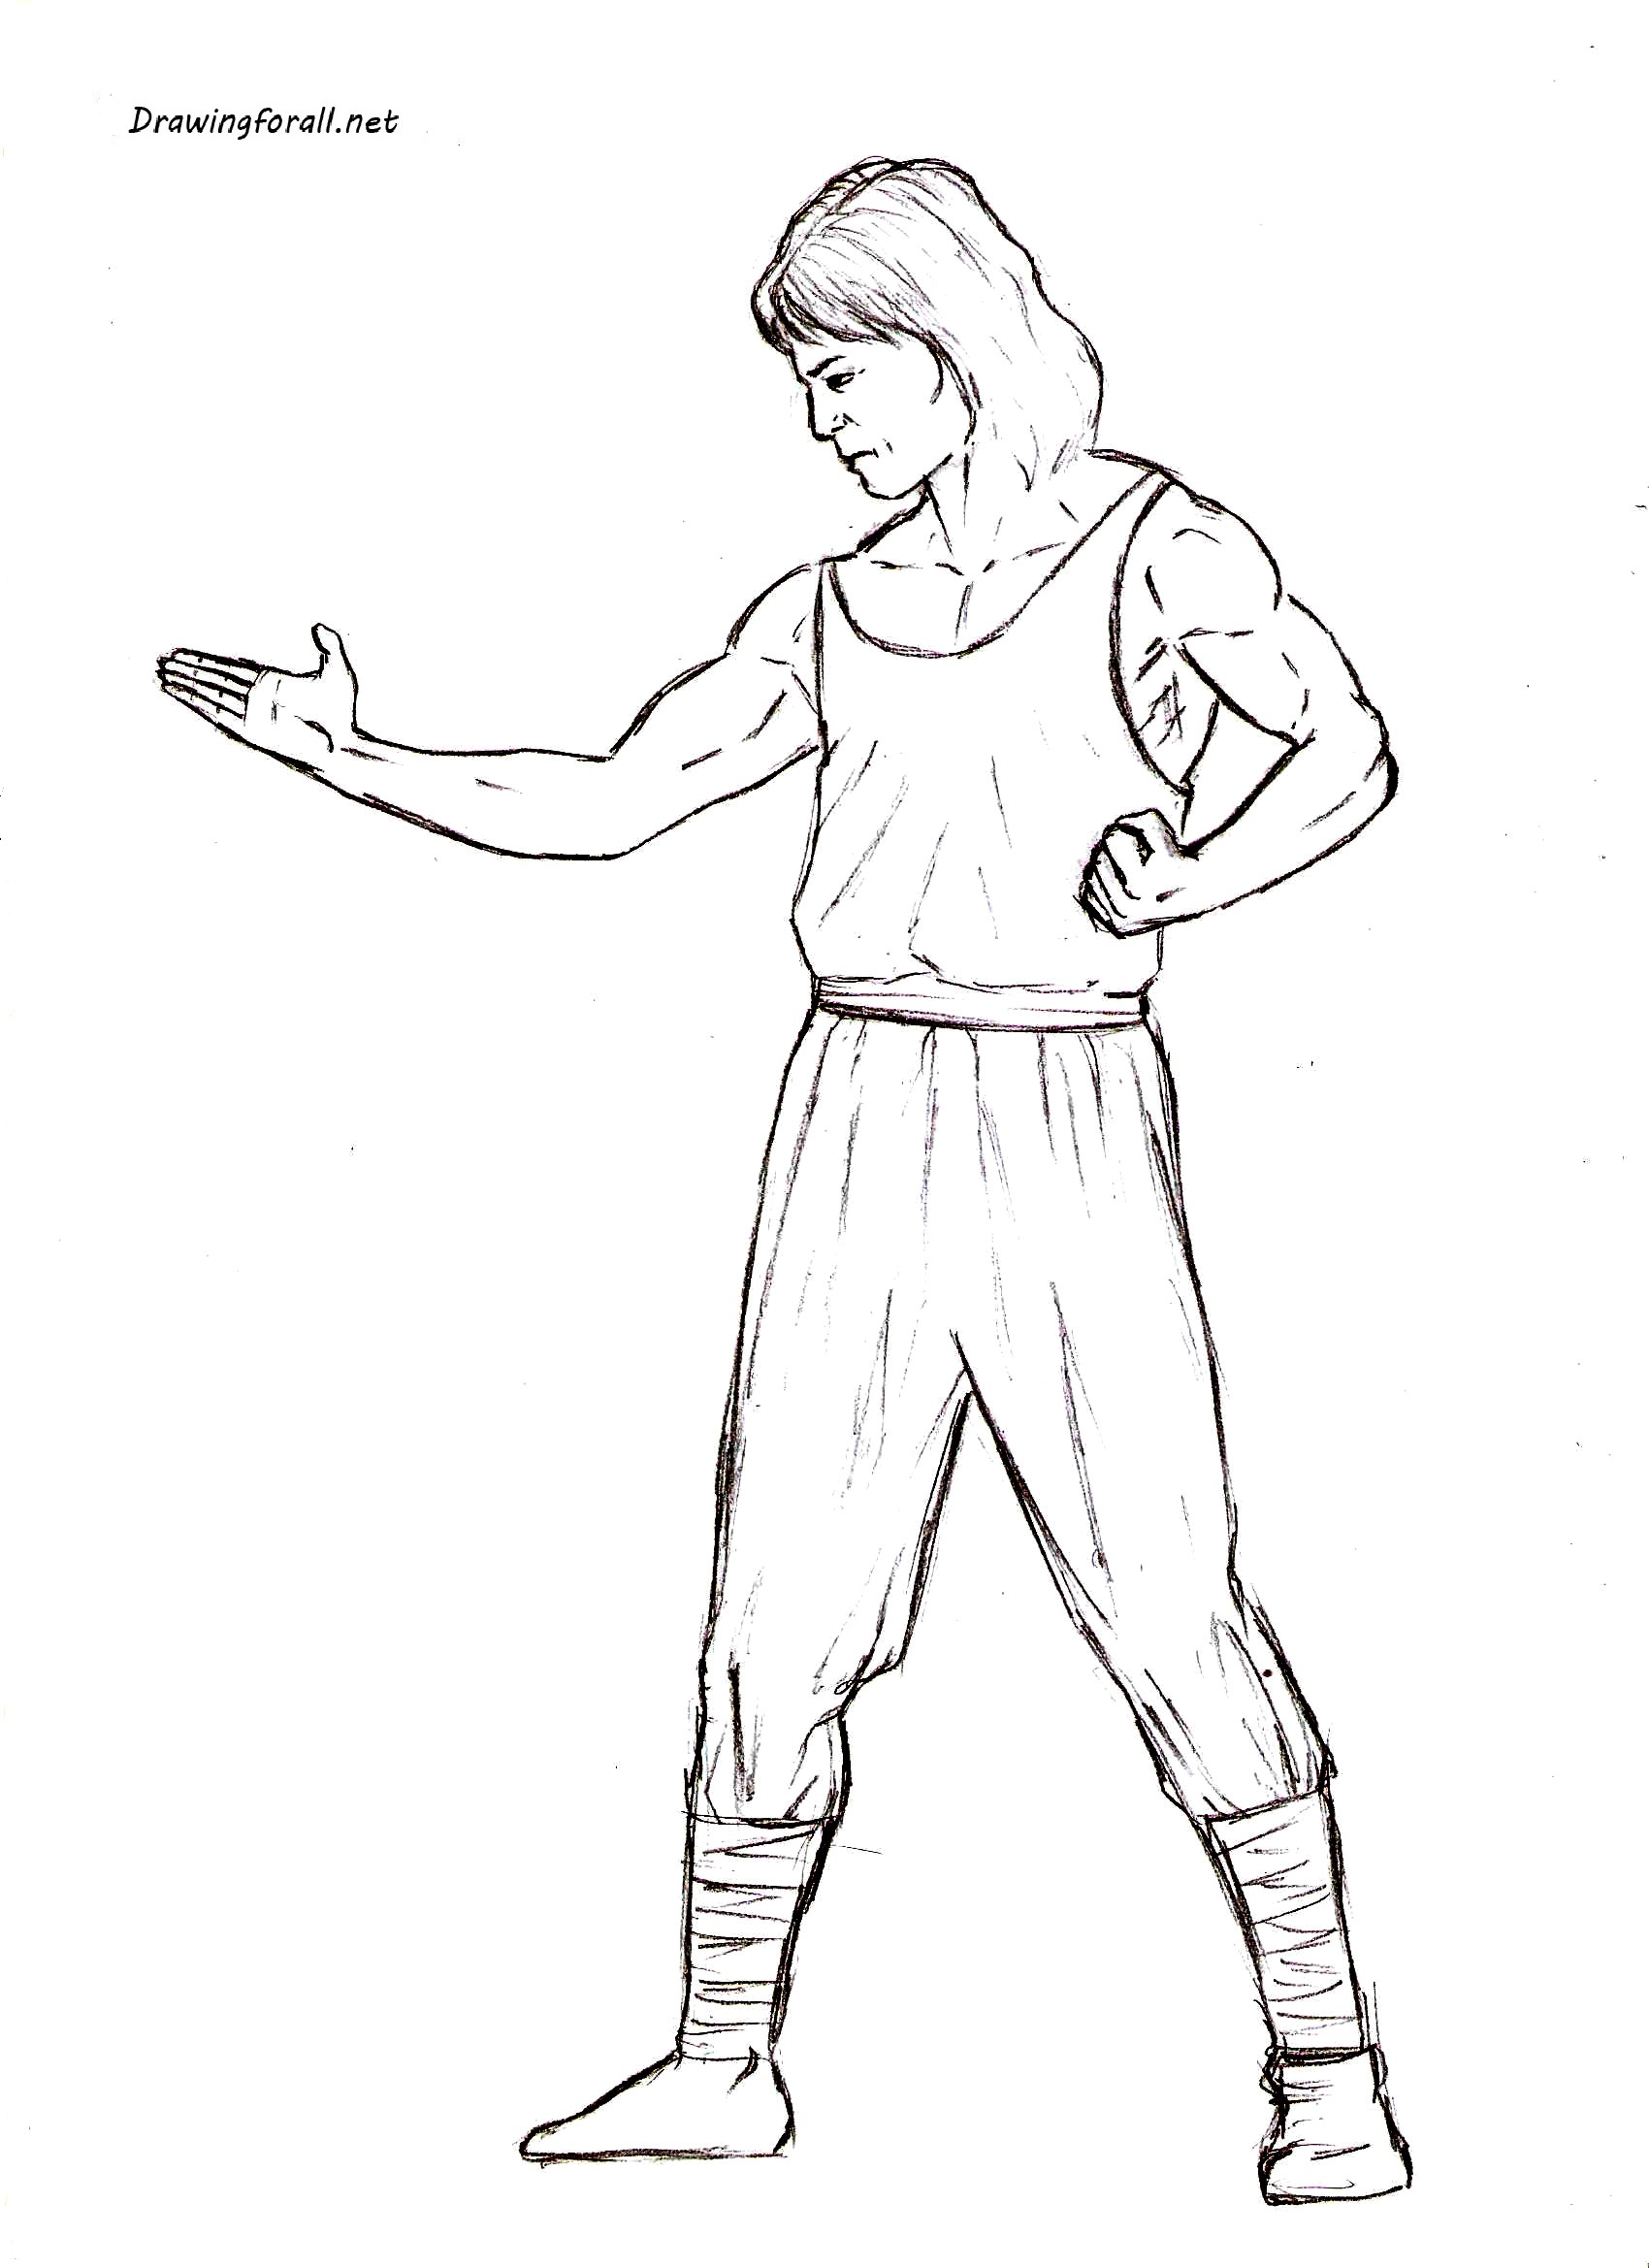 How to draw Liu Kang step by step